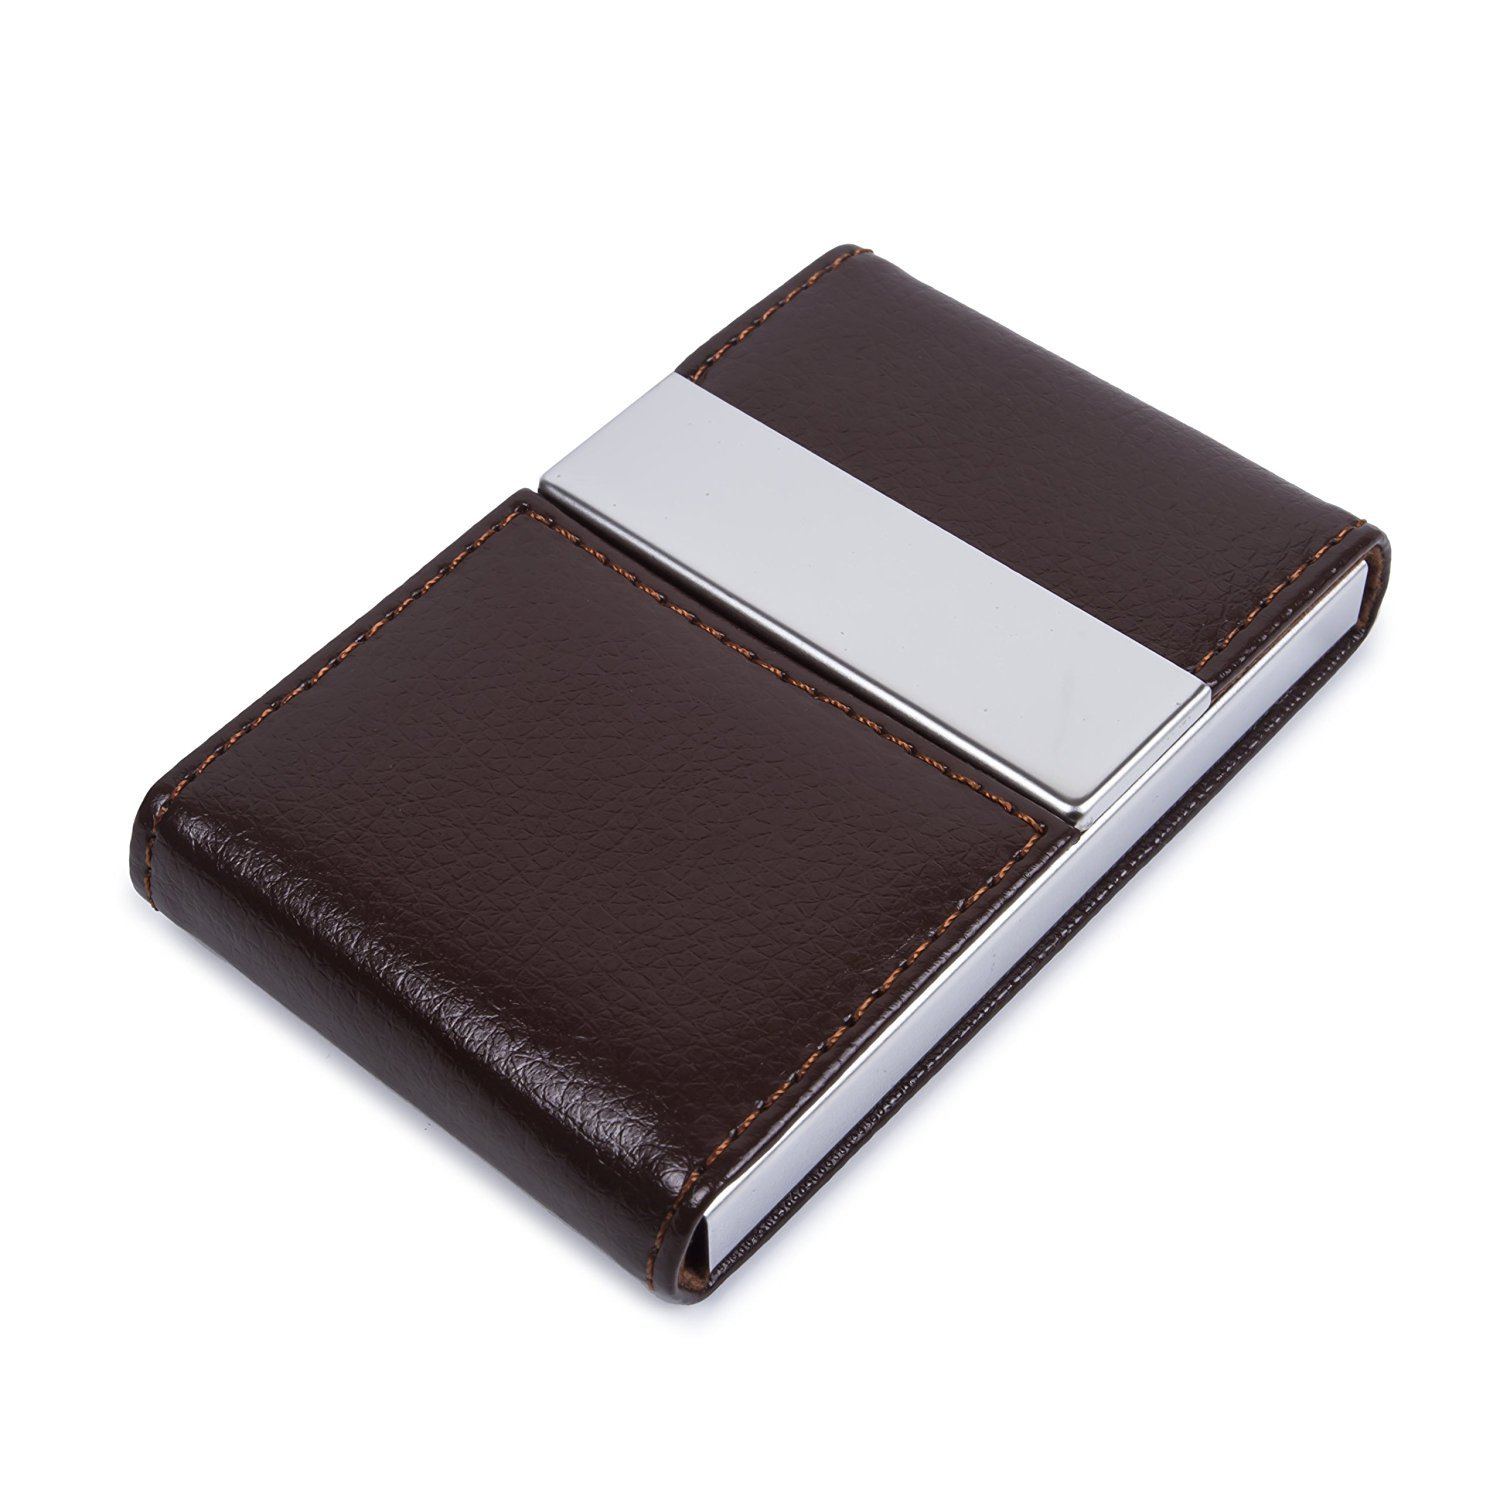 Pettom Minimalist Creative Slim Leather Stainless Steel Business Card Holder Credit Name Card Case Light Money Clip Wallet with Magnetic Shut (brown)